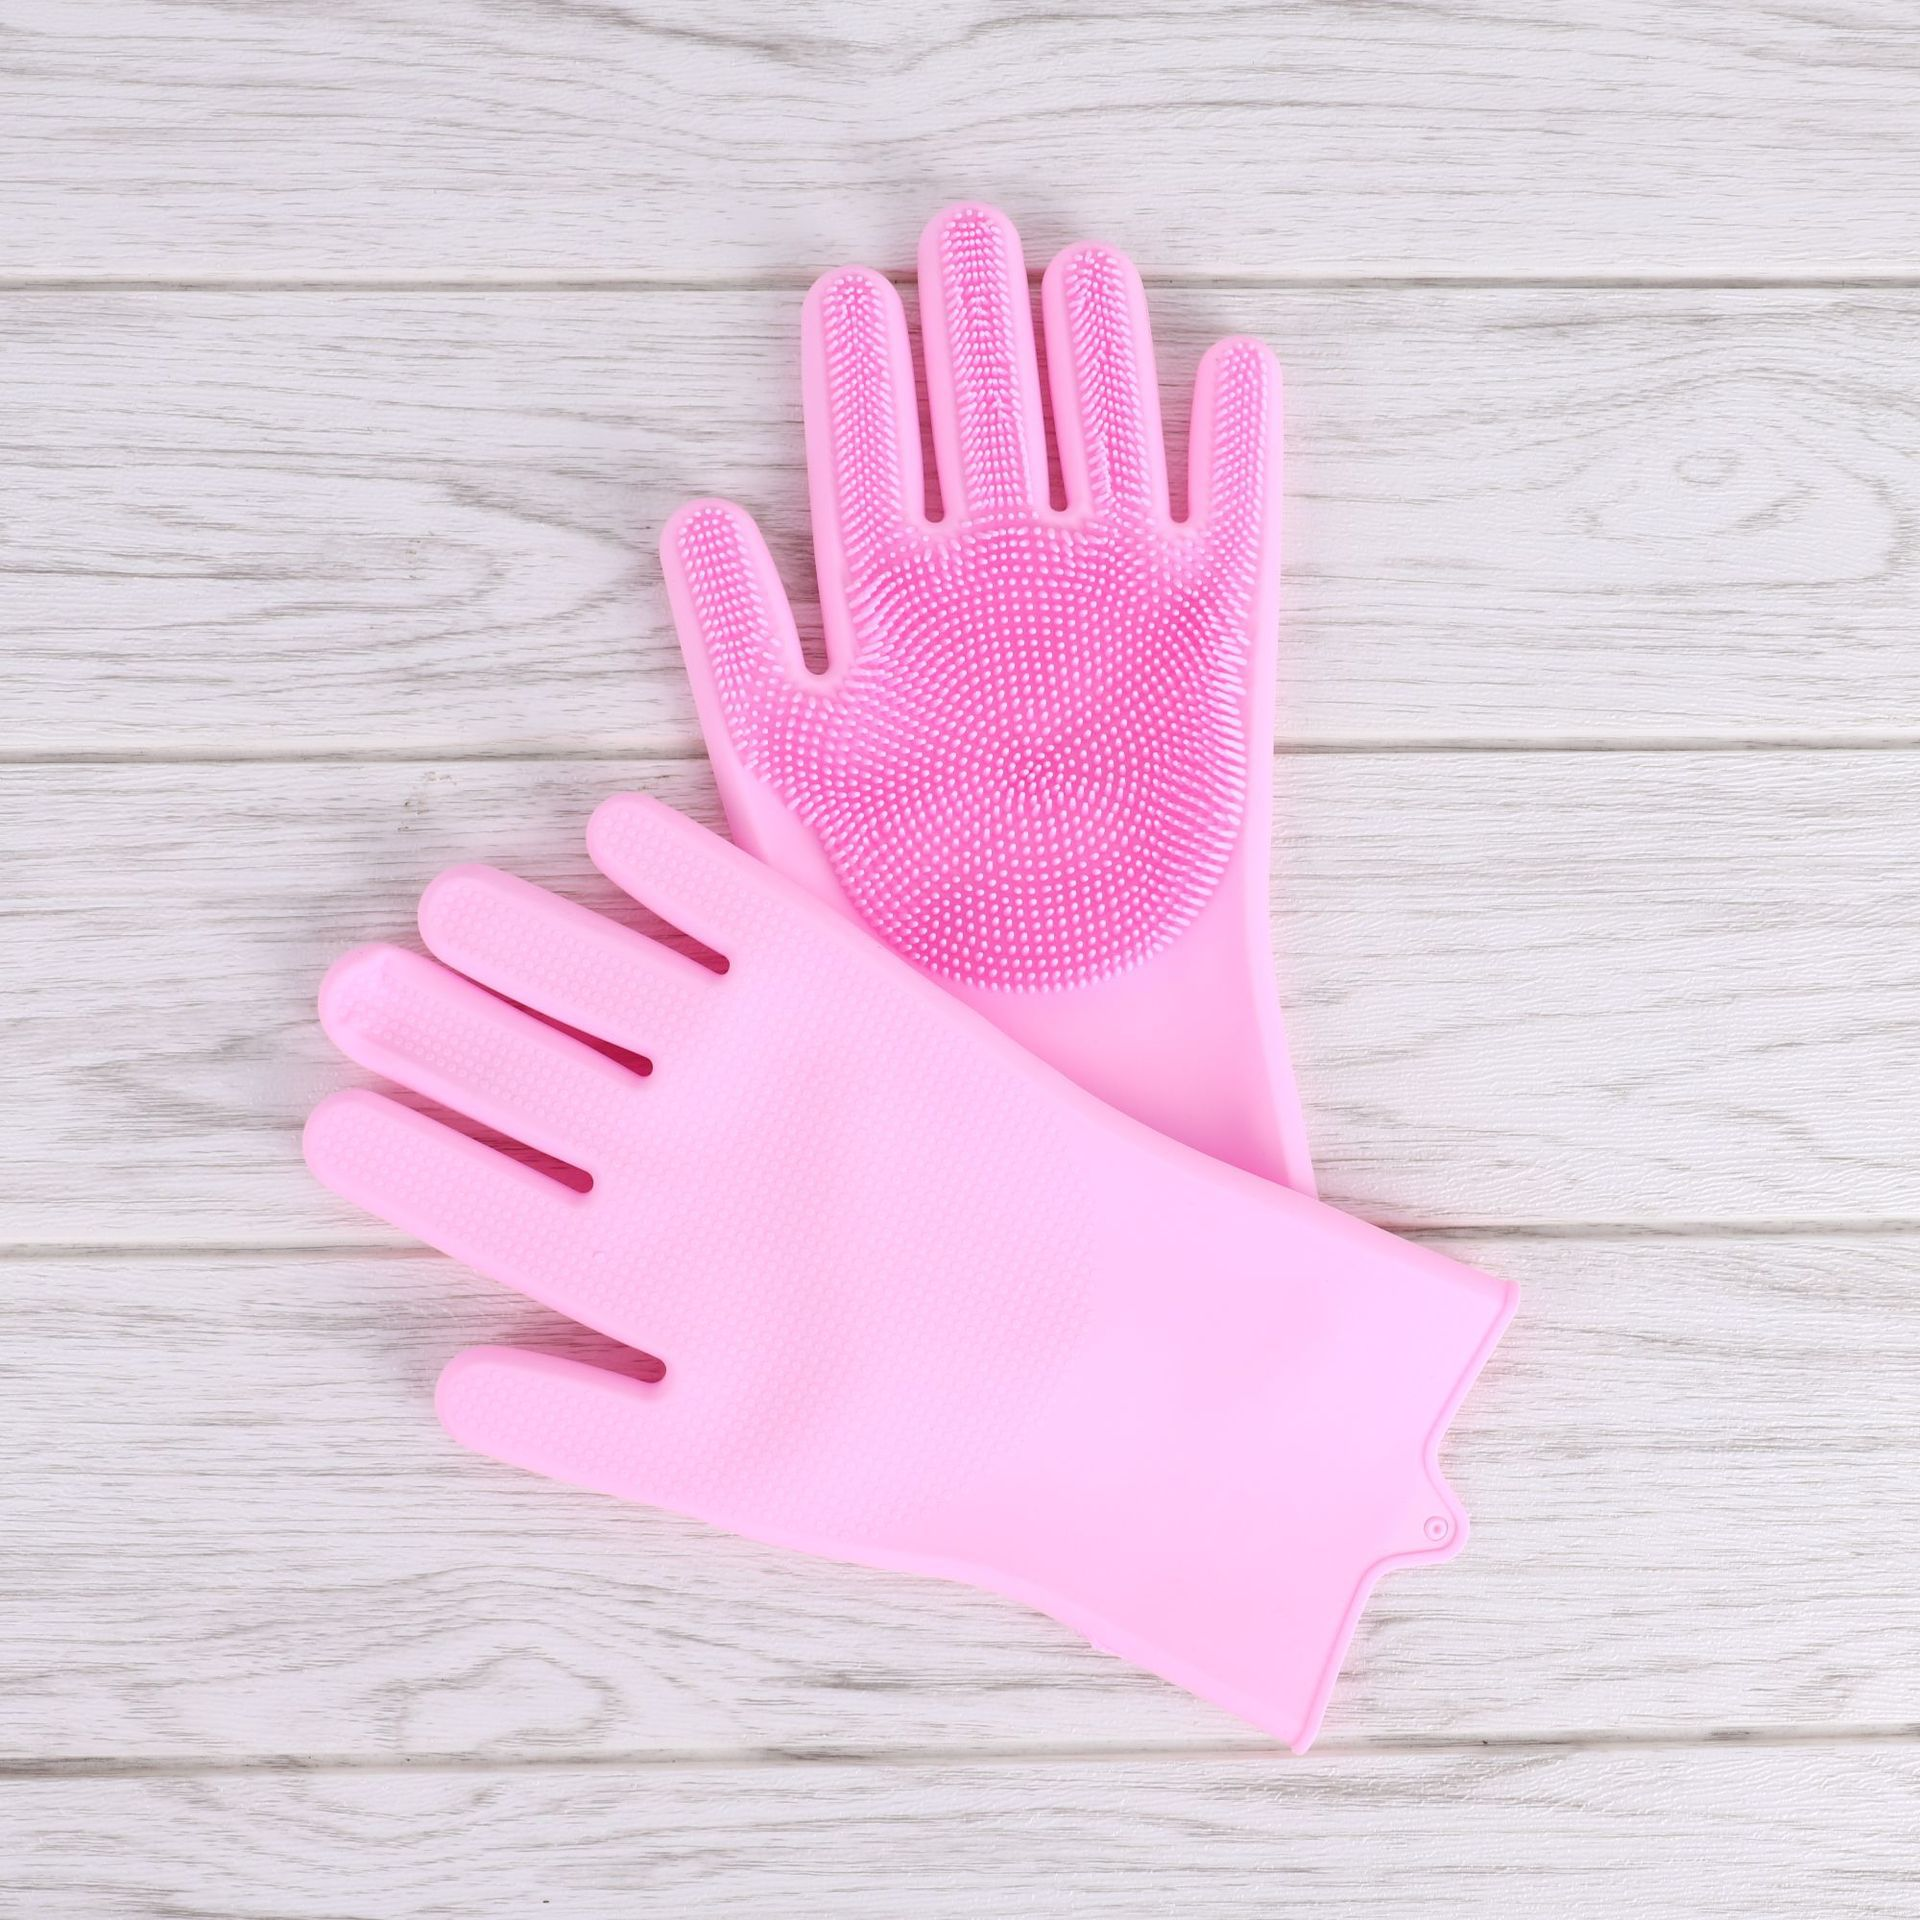 Wear-resistant Cleaning Gloves for Household Use